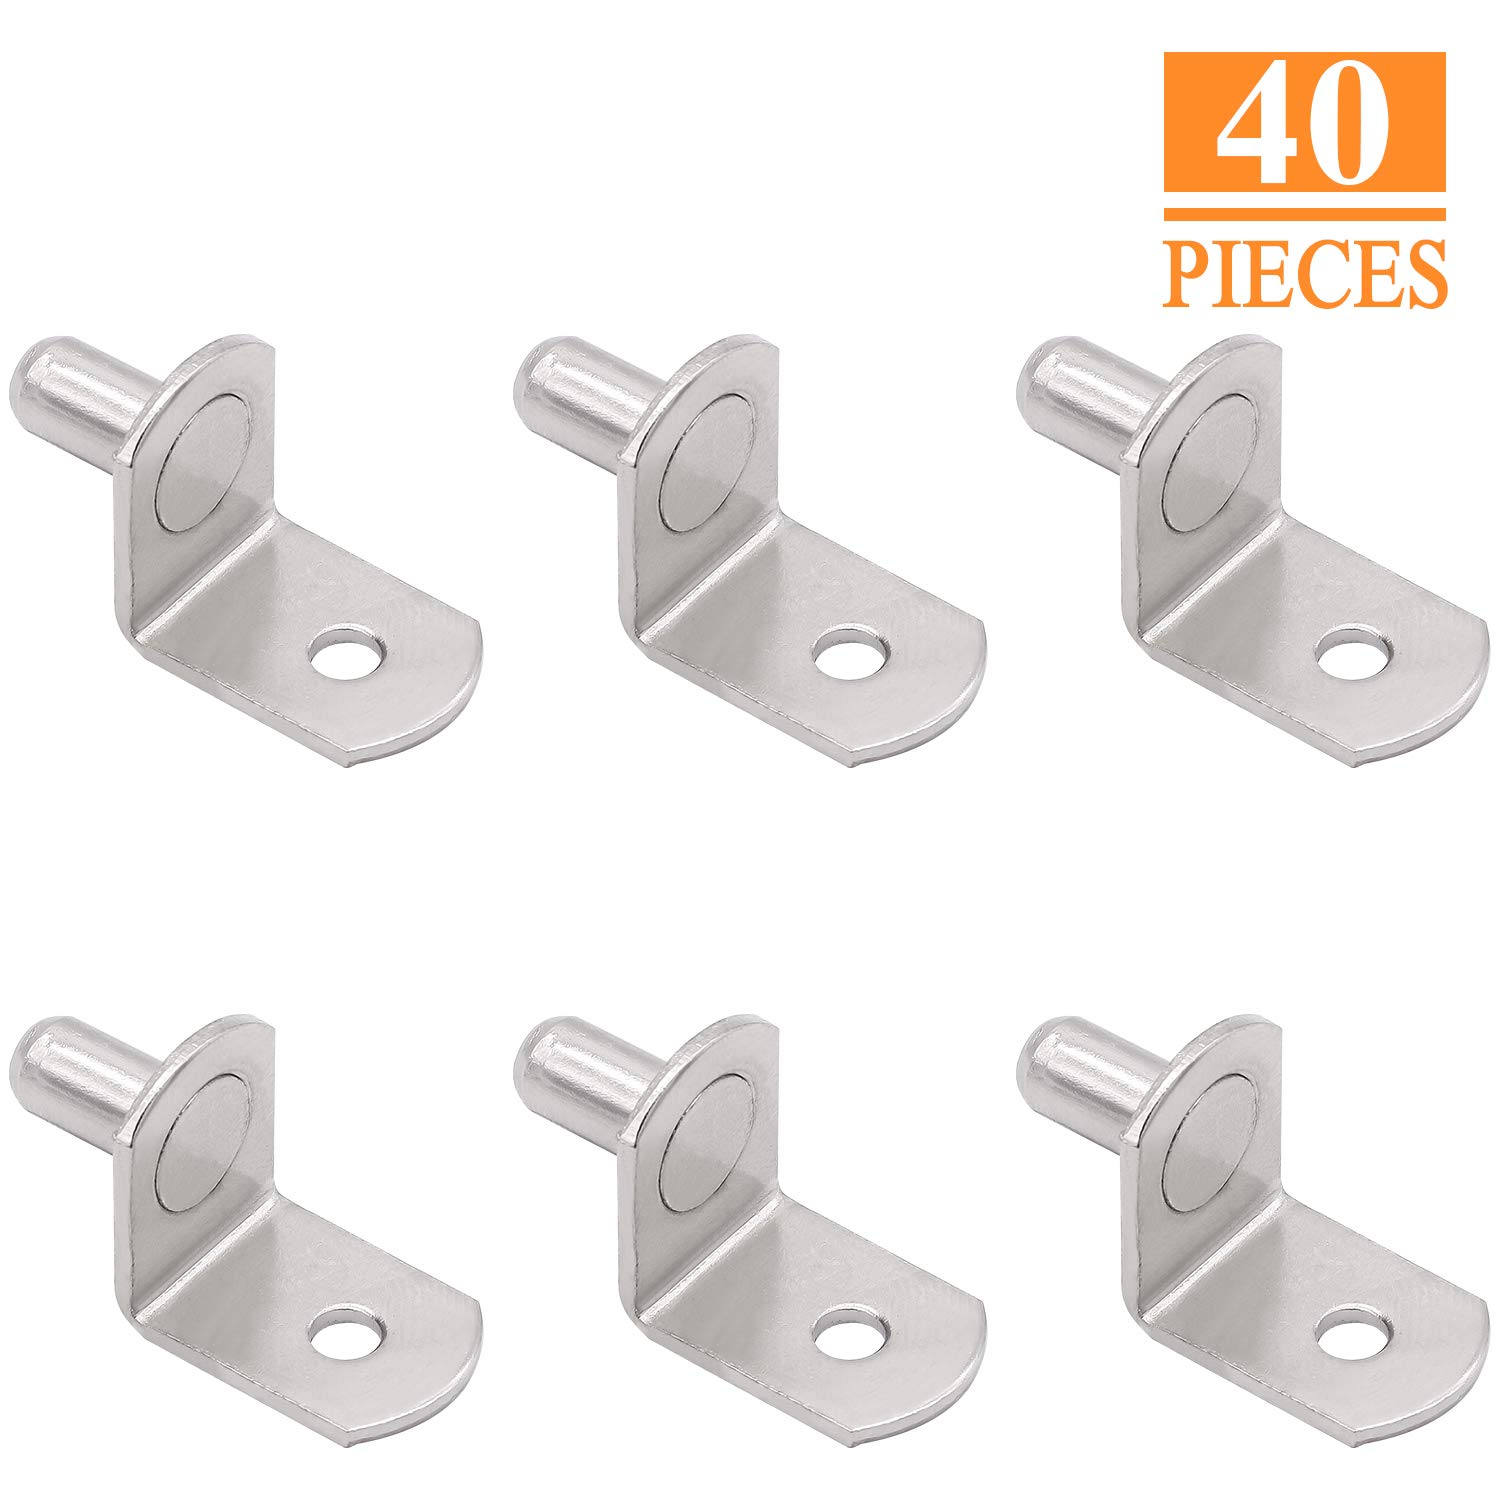 Shelf Bracket Pegs with Hole SELIKOUR 1//4 Shelf Support Polished Zinc Bracket-Style 40PCS L-Shaped Cabinet Furniture Closet Shelf Pins Support